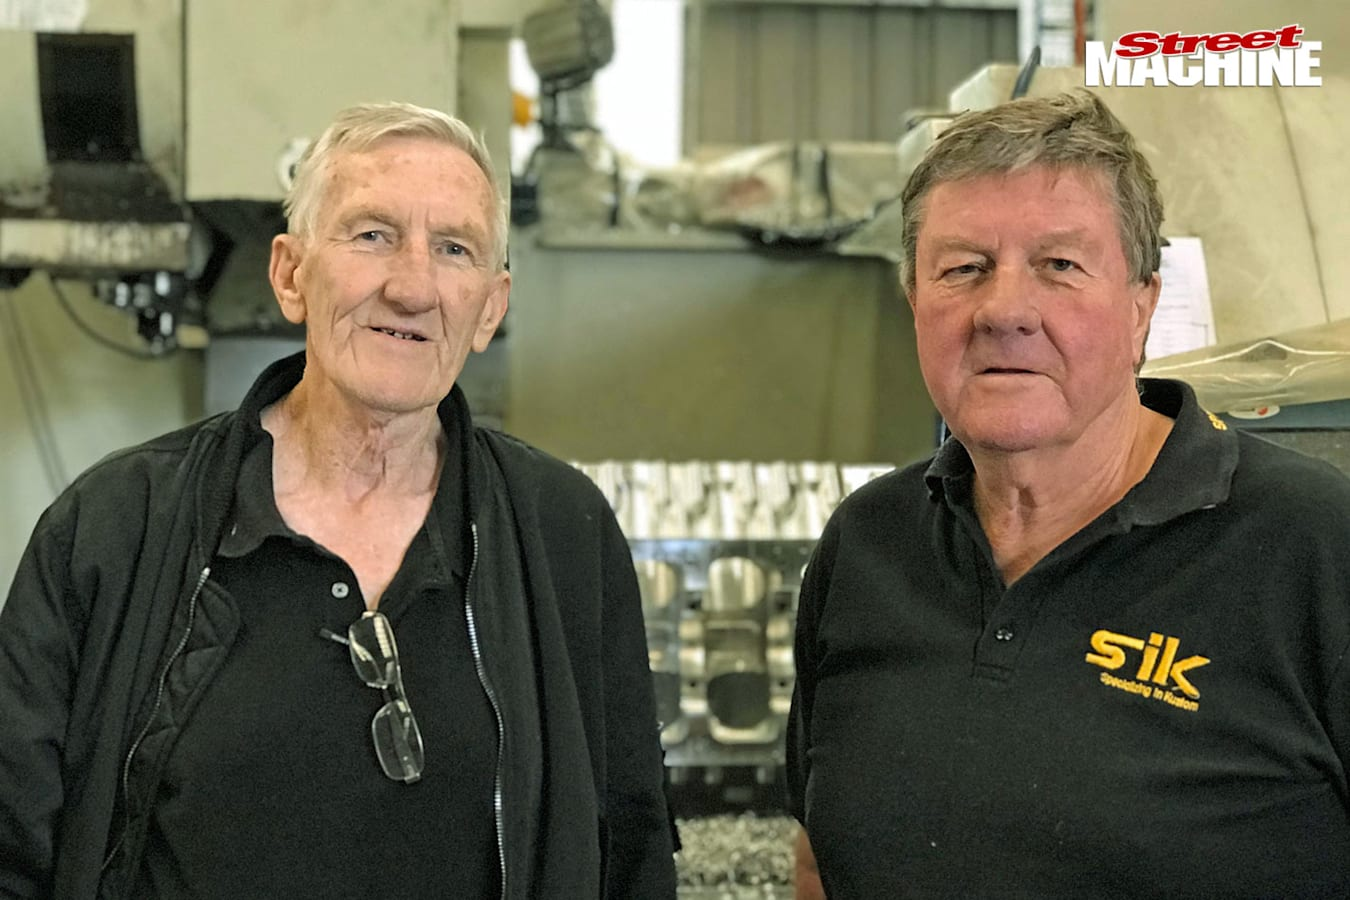 Stan and Norm Sainty